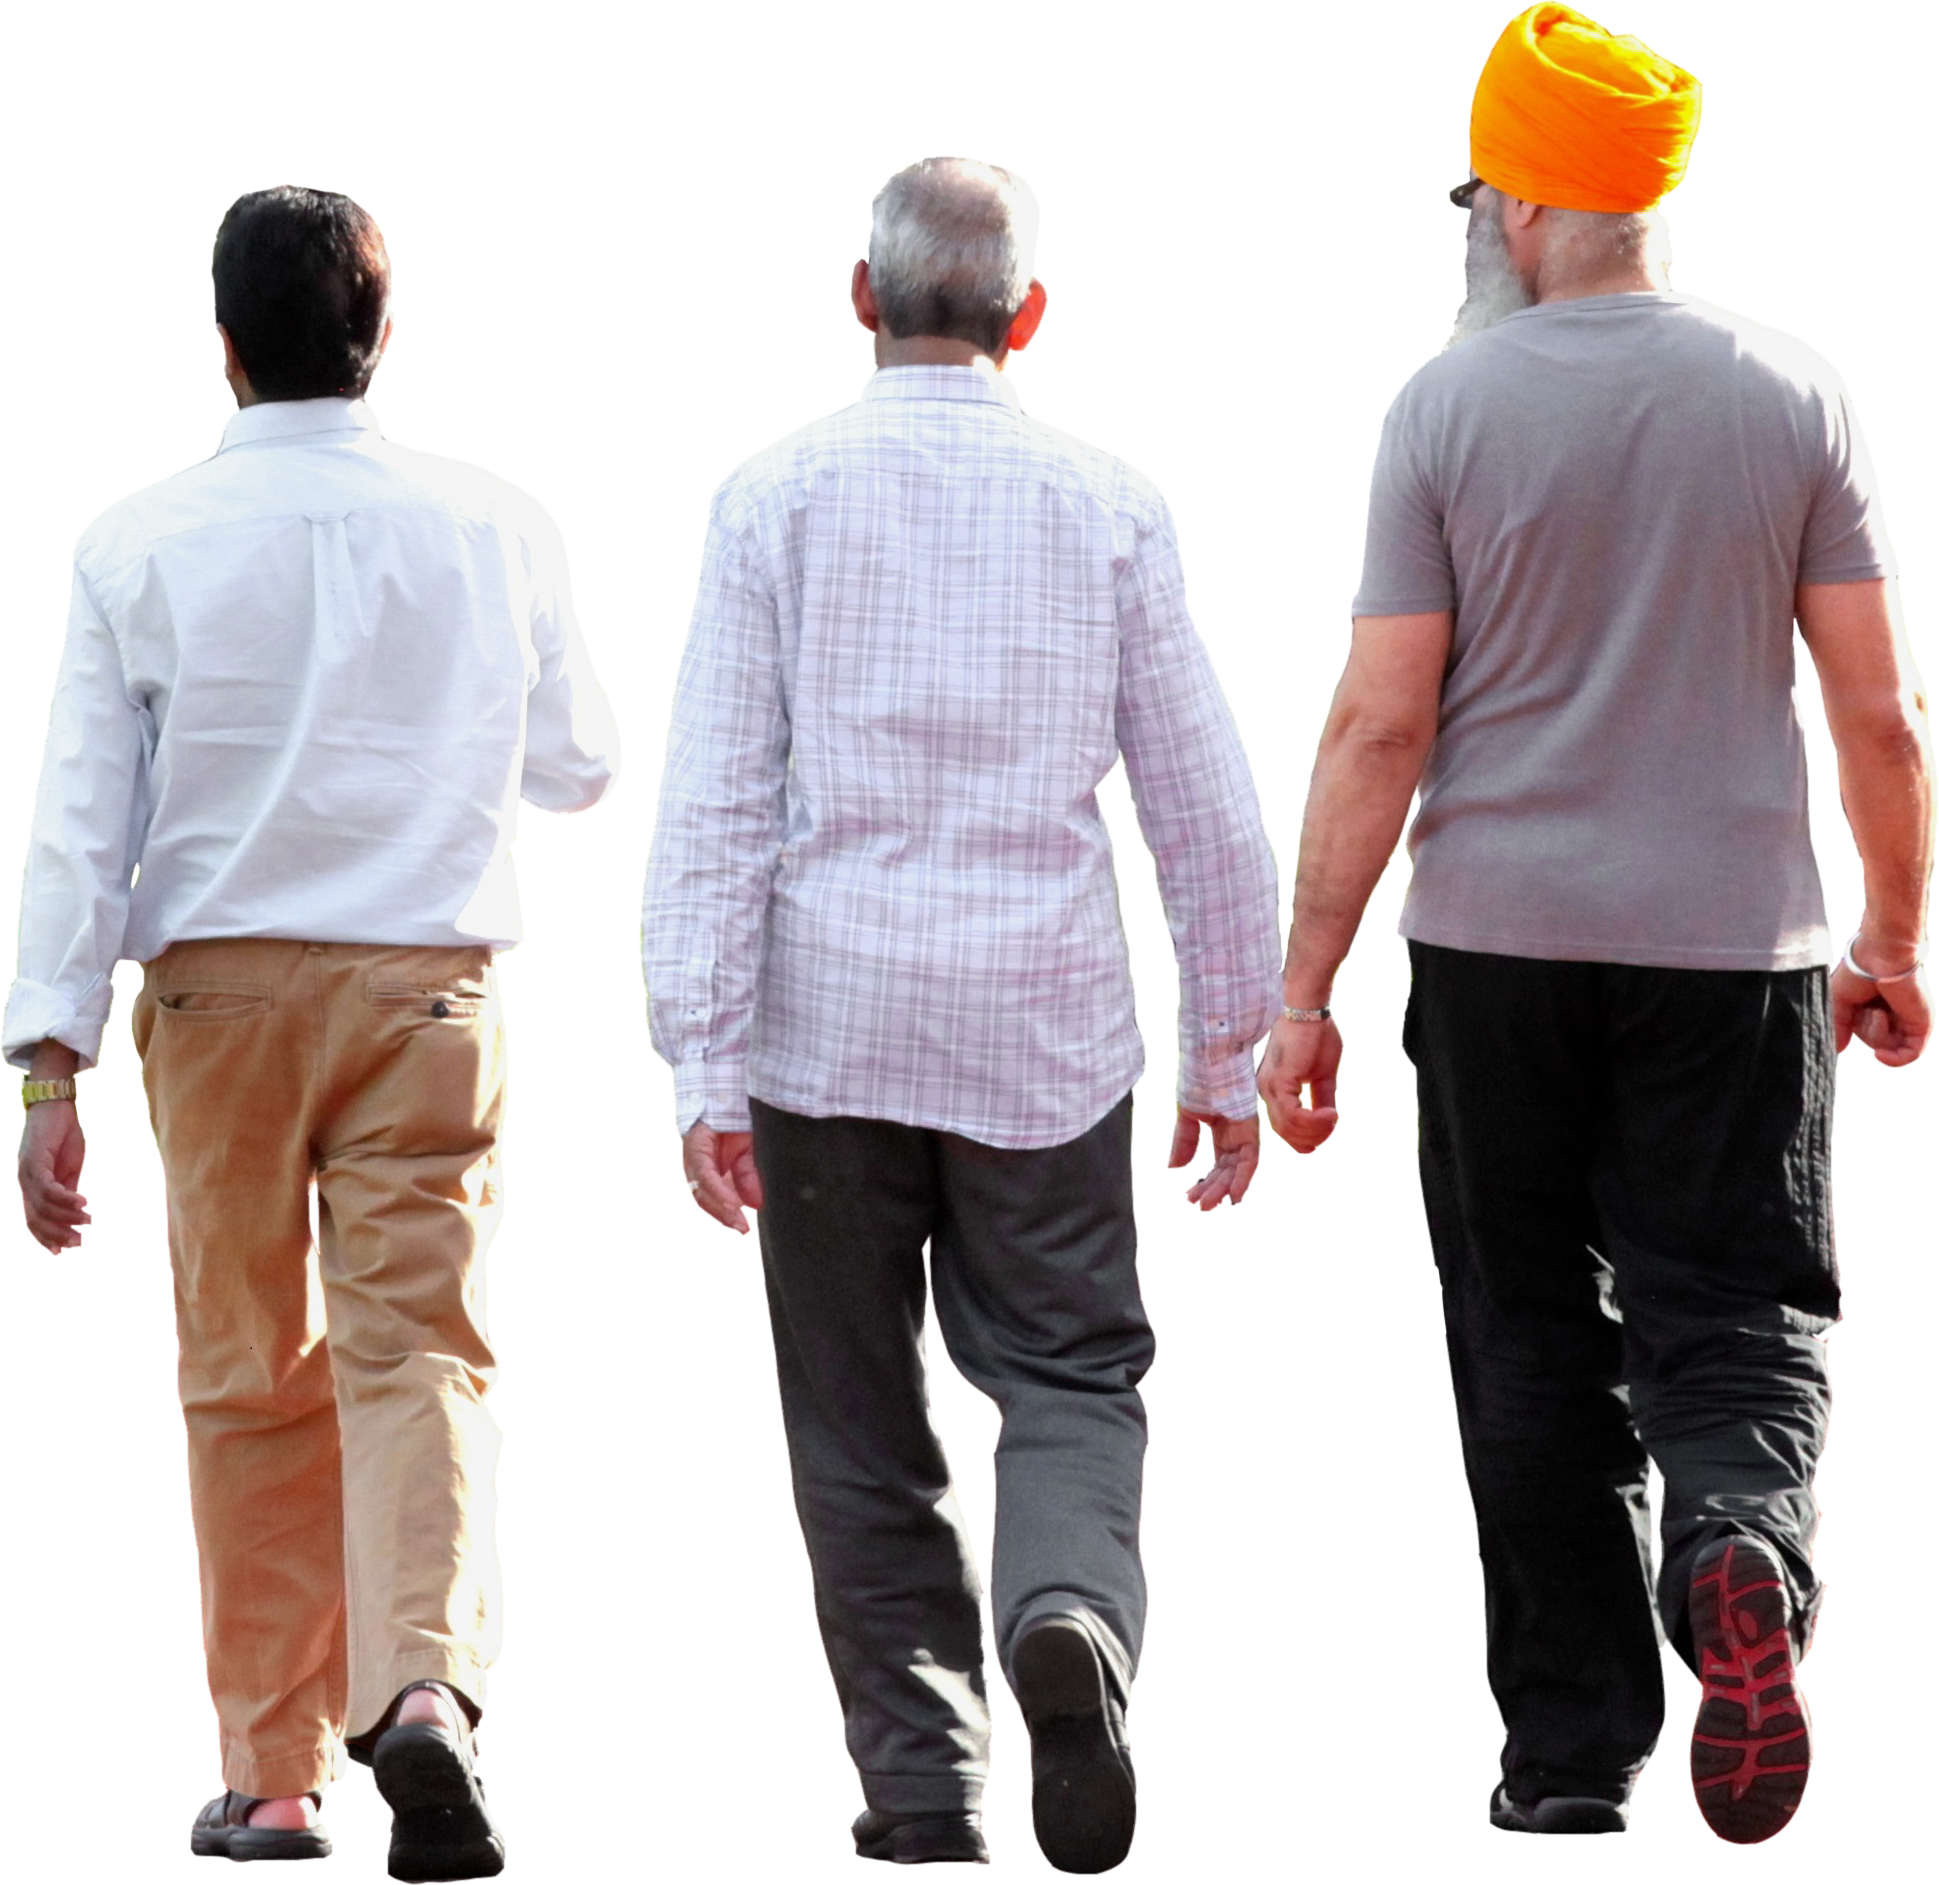 walking human transparent background ethnic three file advertisements cutouts cropped